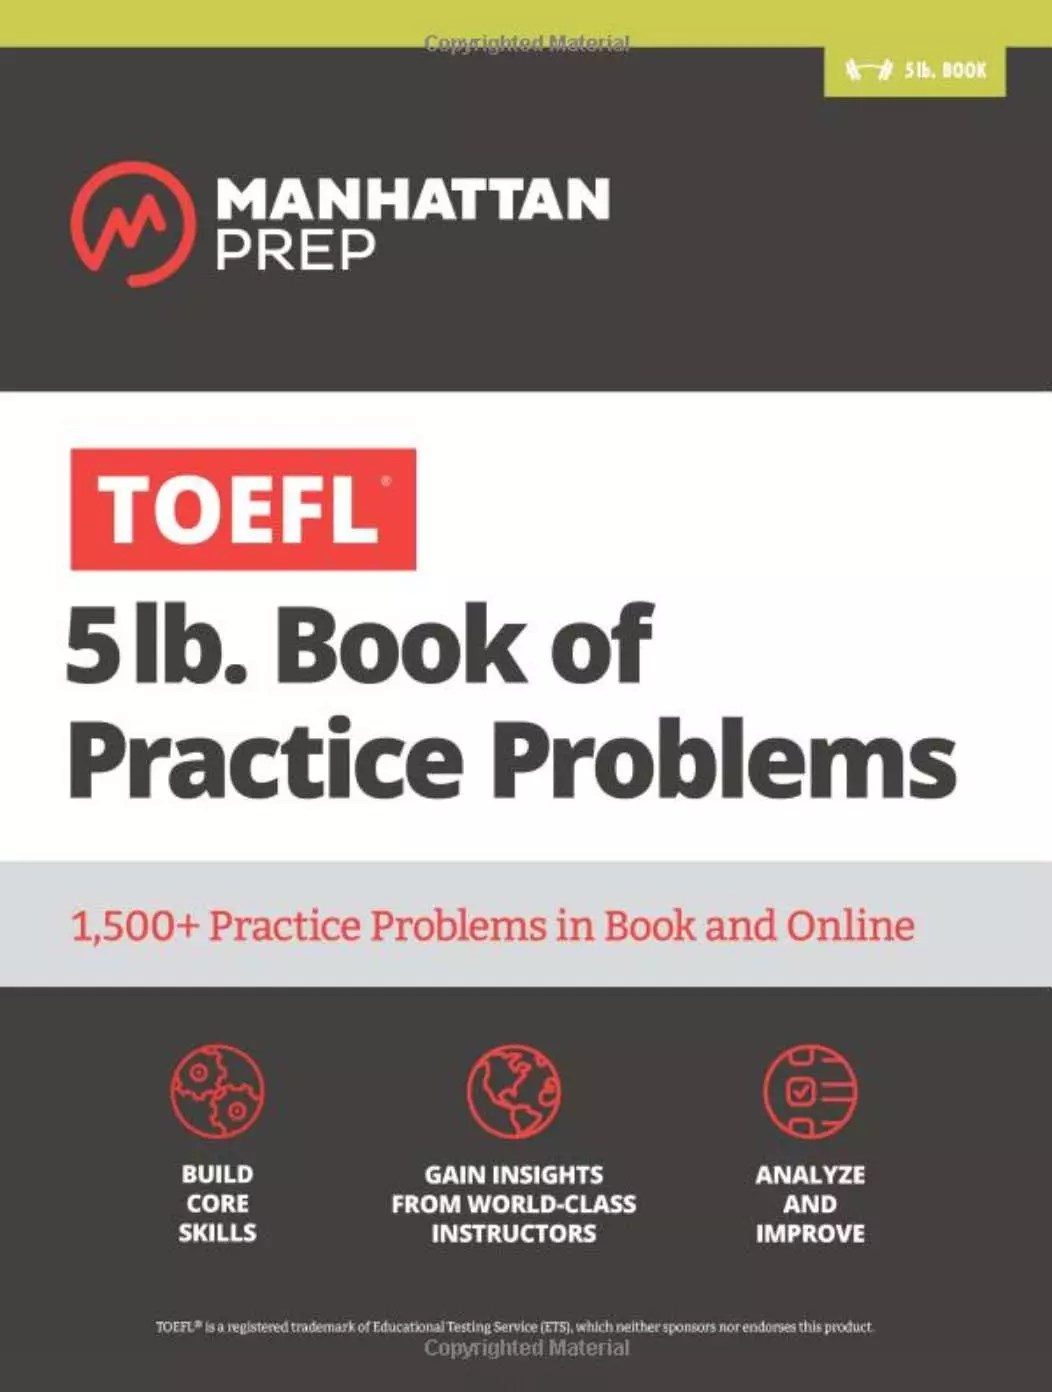 5 lb. Book of TOEFL Practice Problems by Manhattan Prep